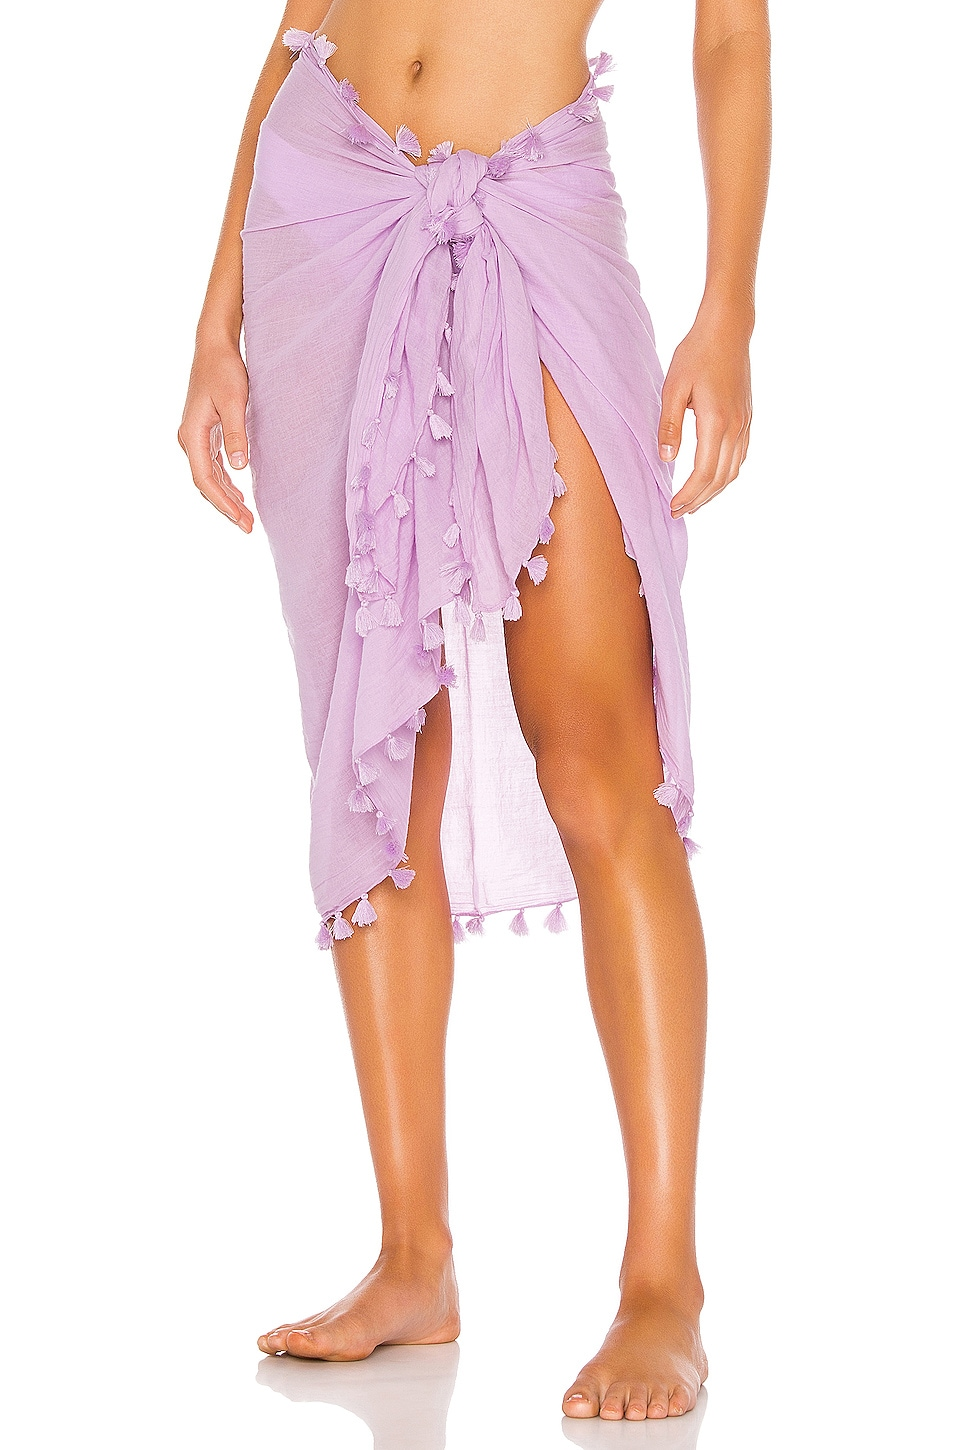 Seafolly Cotton Gauze Sarong in Lilac